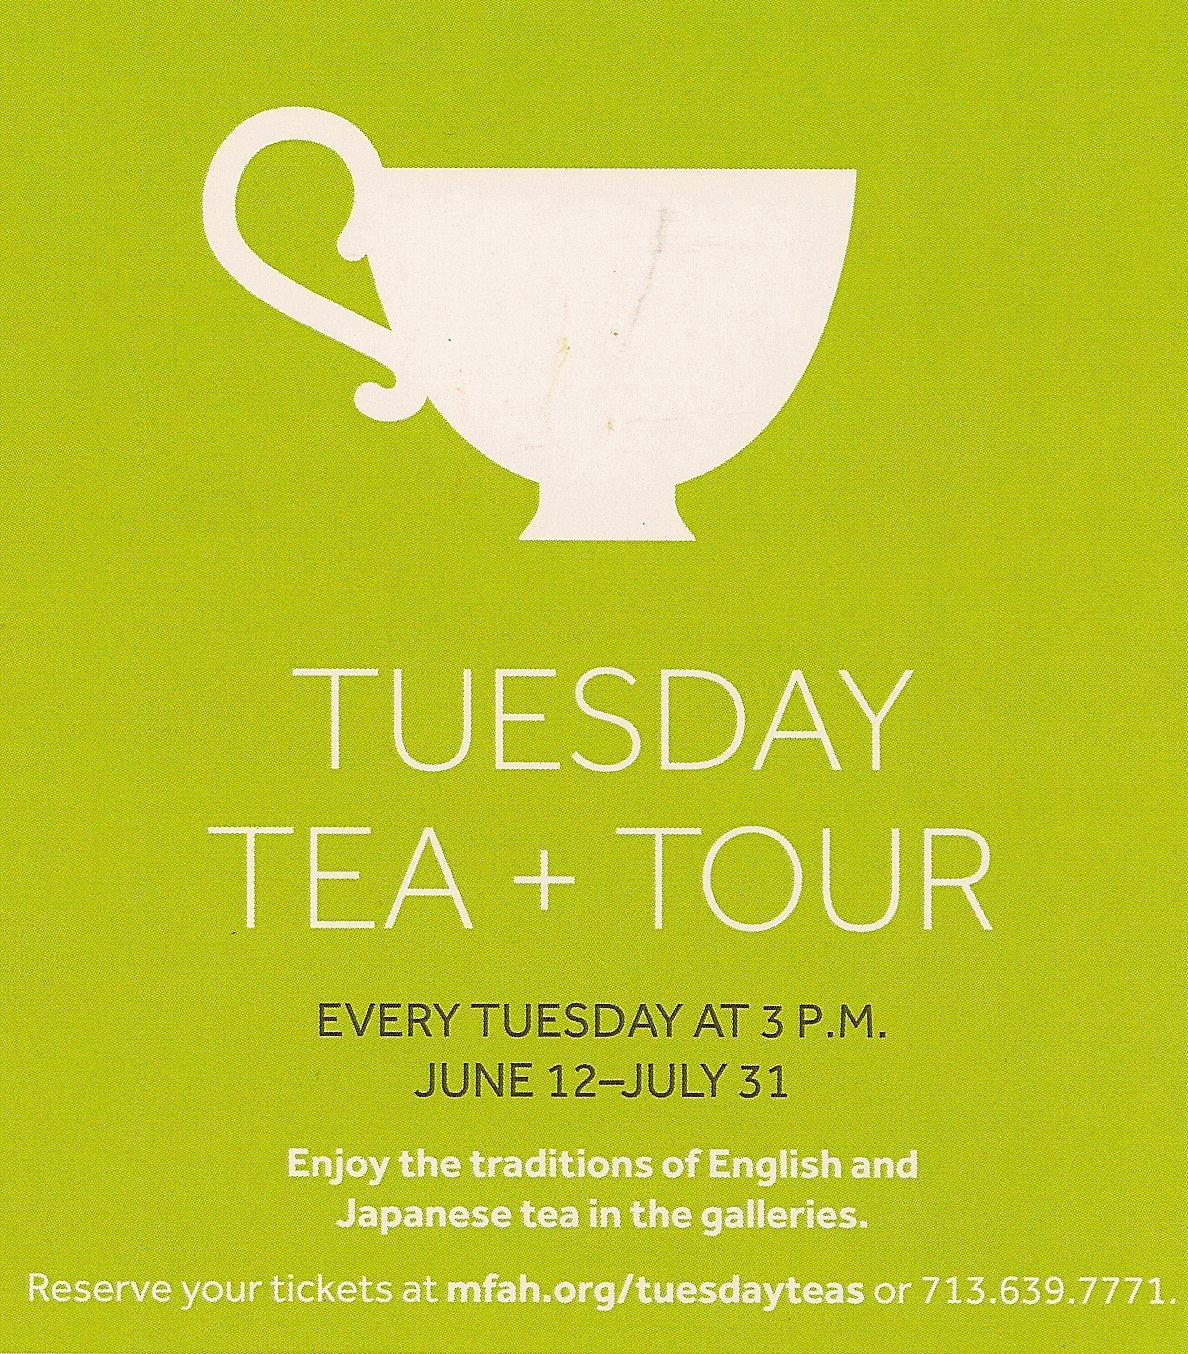 Tuesday Tea And Tour